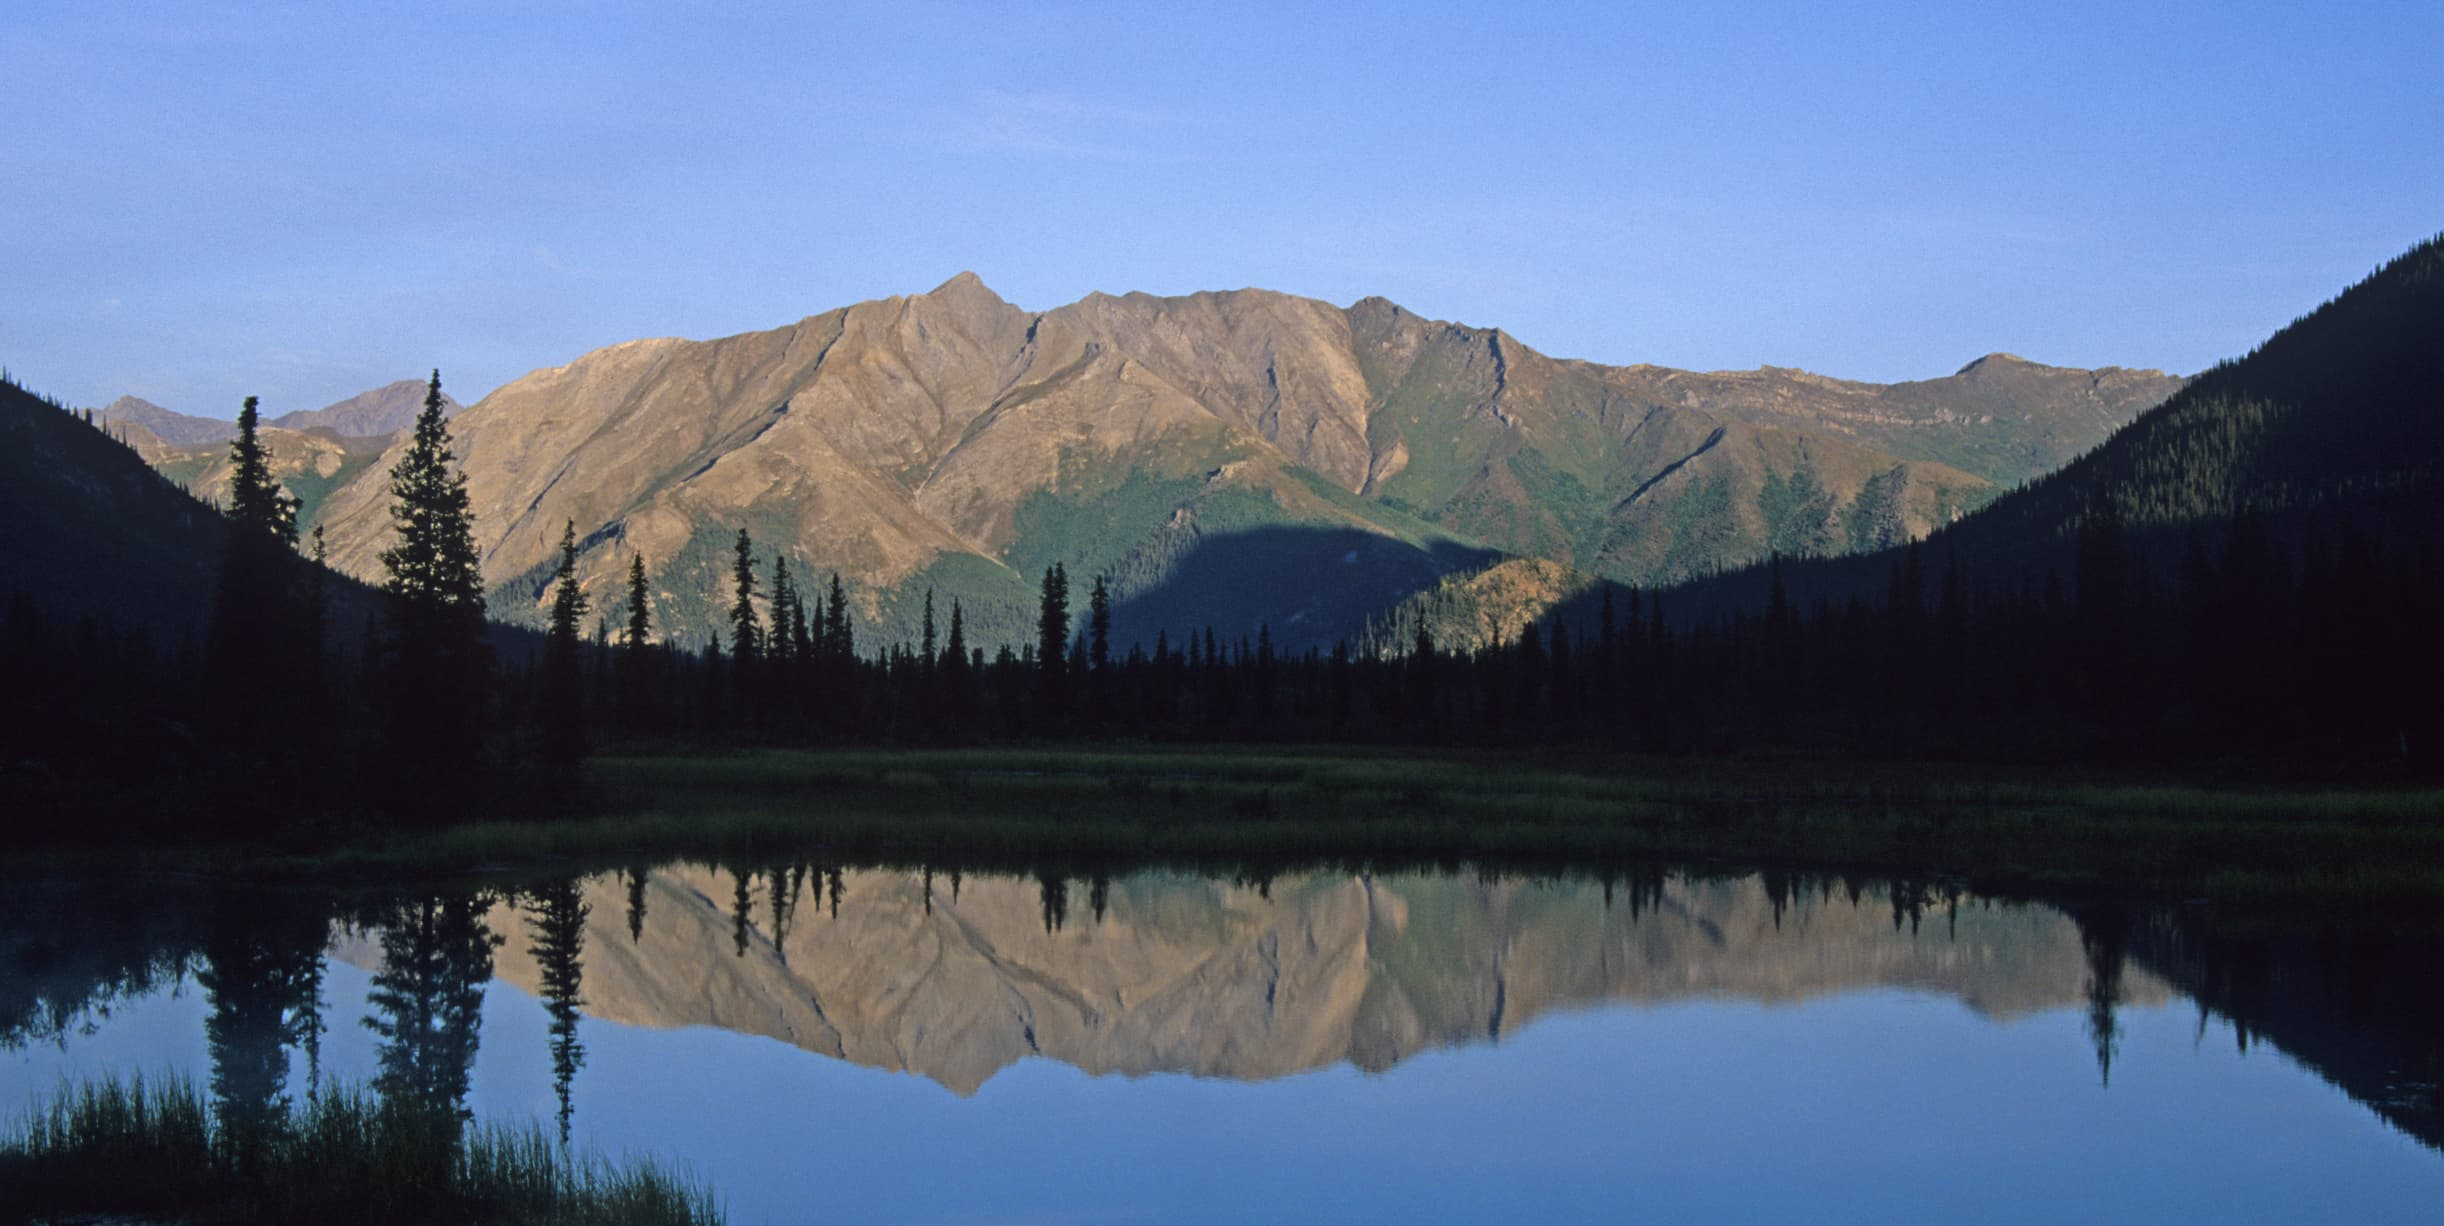 Mountain and Reflection in Gates of the Arctic National Park